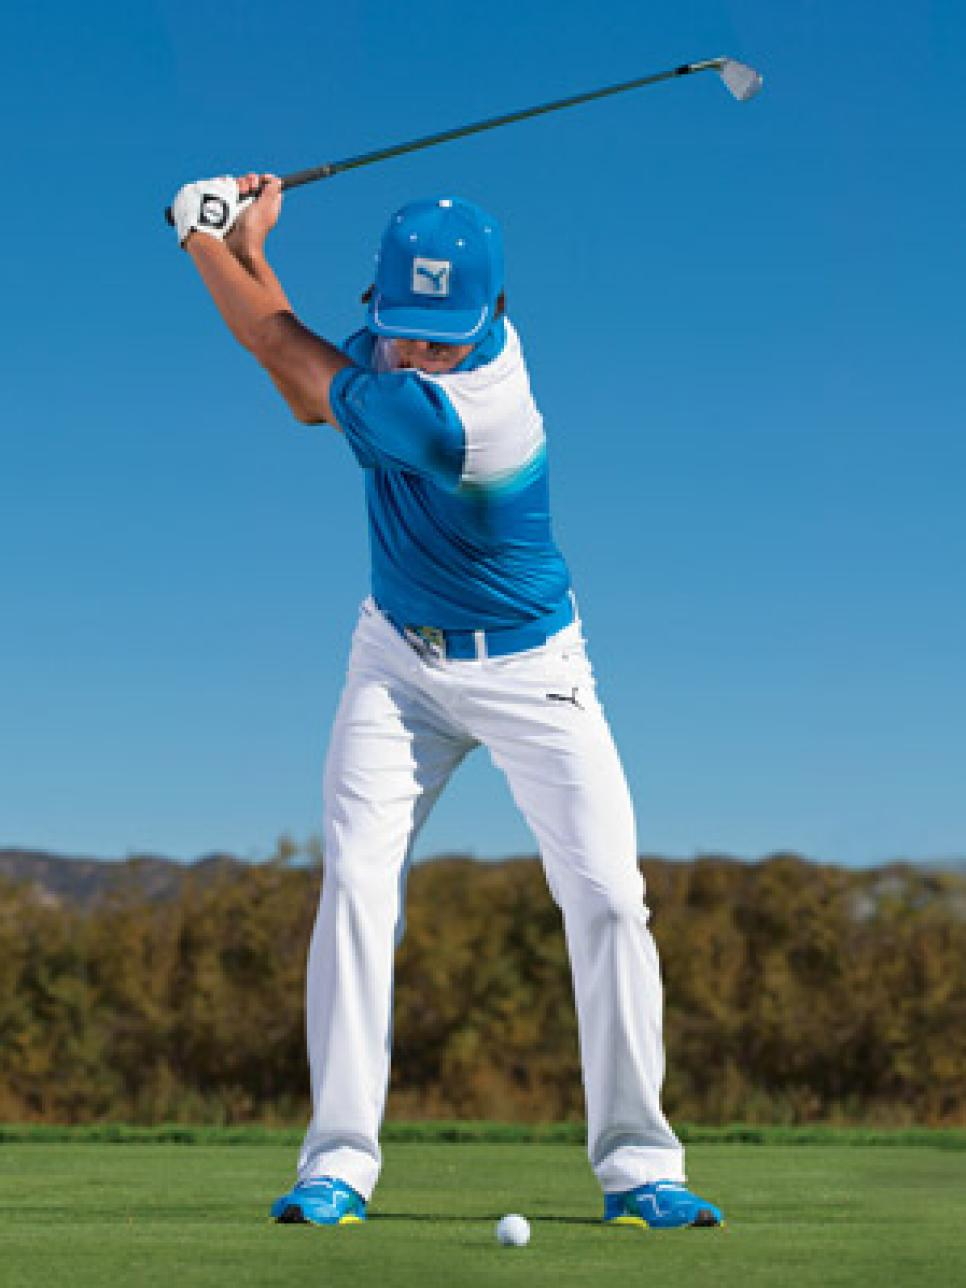 instruction-2013-10-inar03a-rickie-fowler-4-keys-to-go-low.jpg